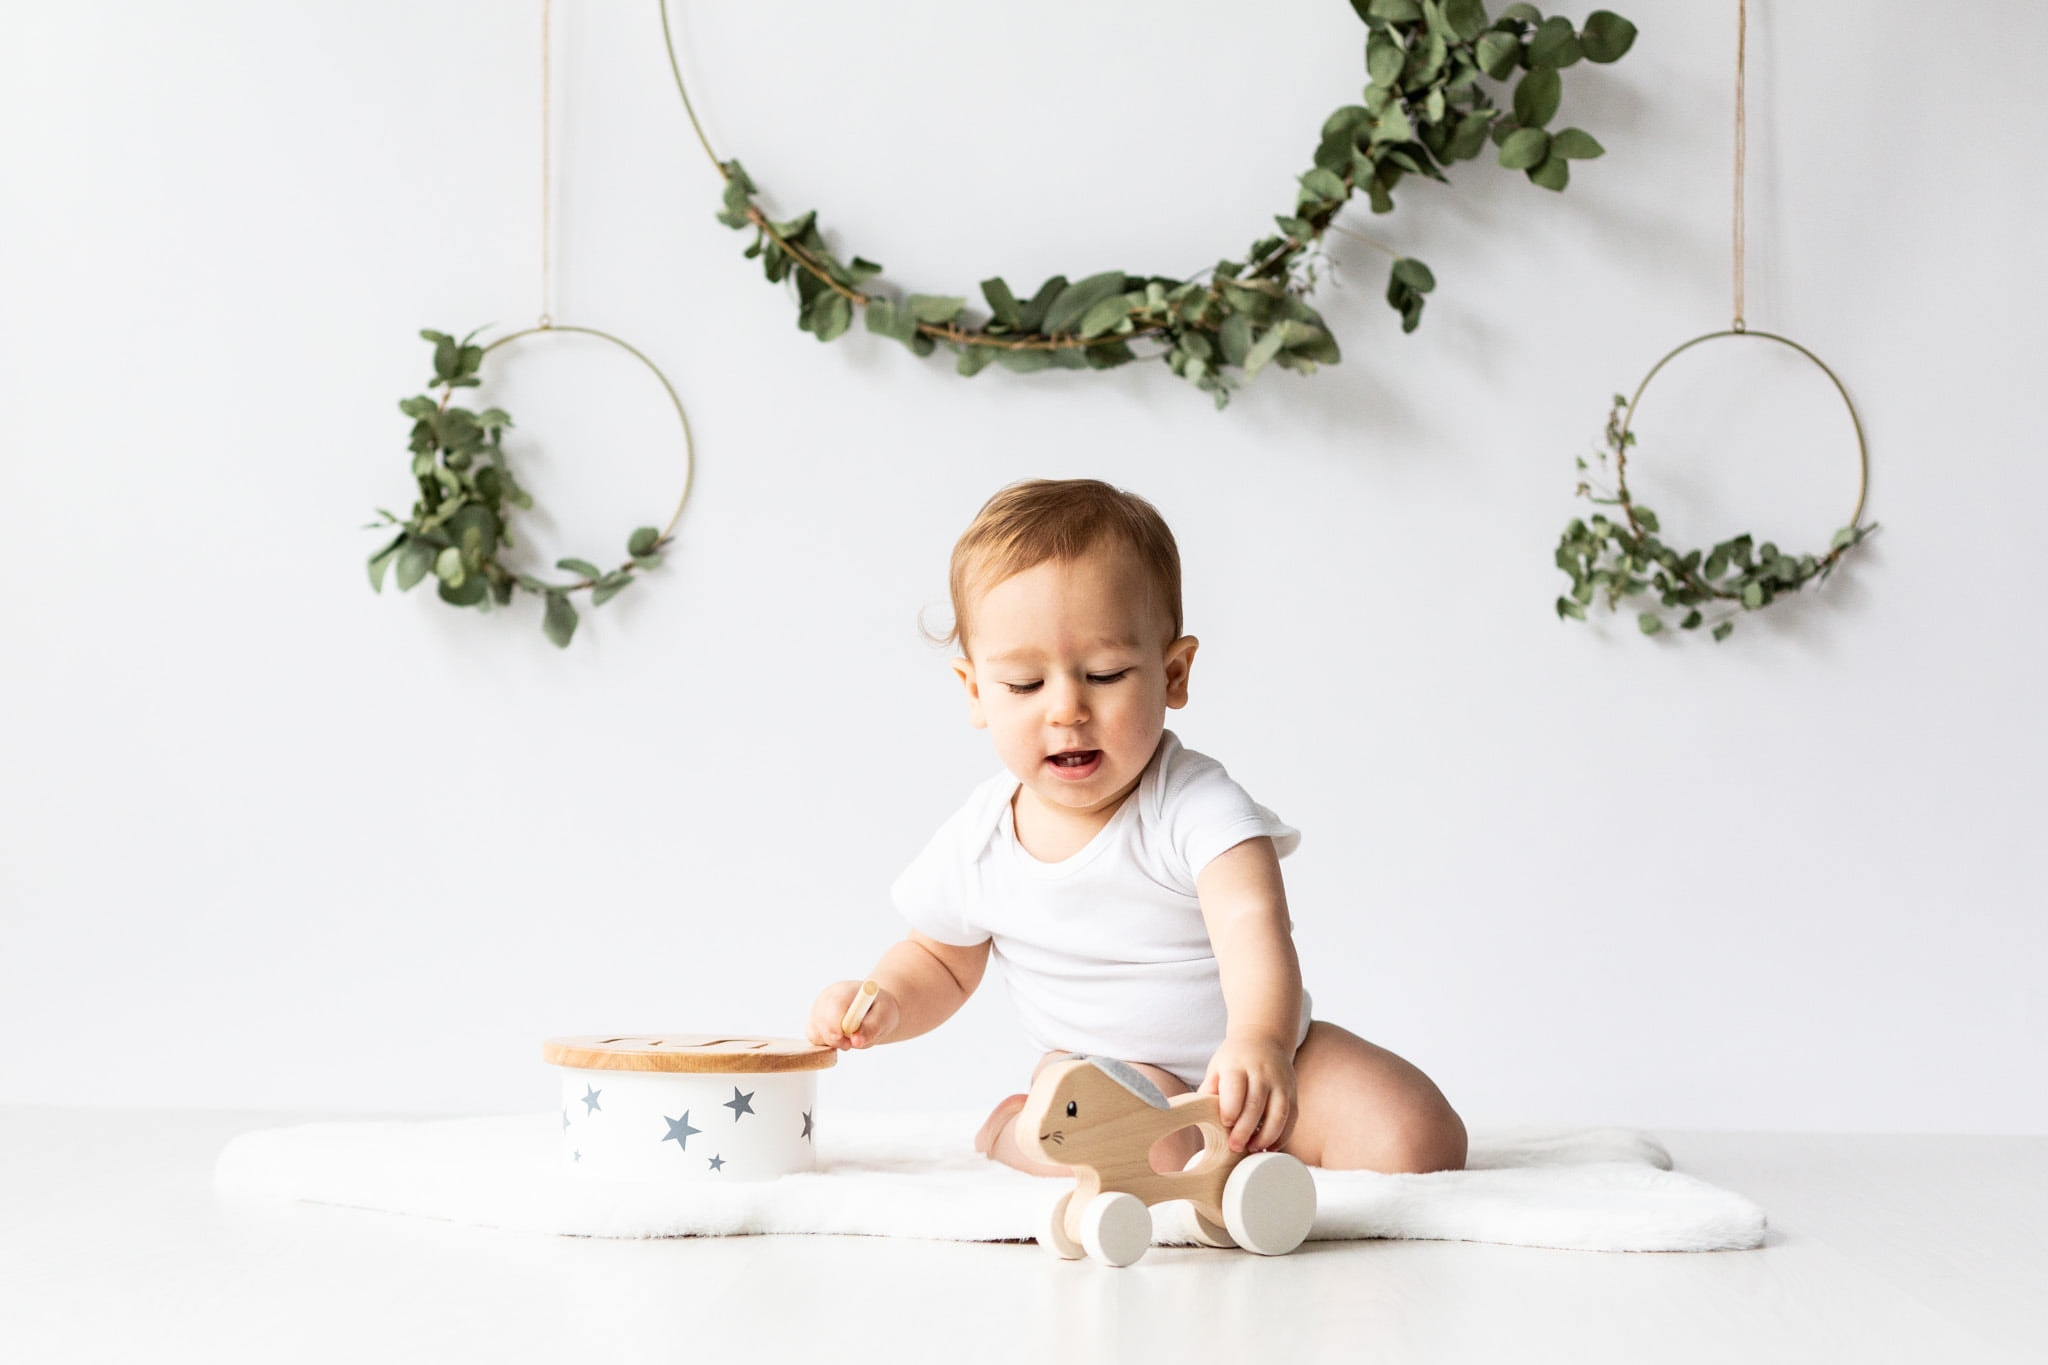 Little girl in white studio set up playing with wooden toys taken at the beginning of her cakesmash photoshoot in Bexley